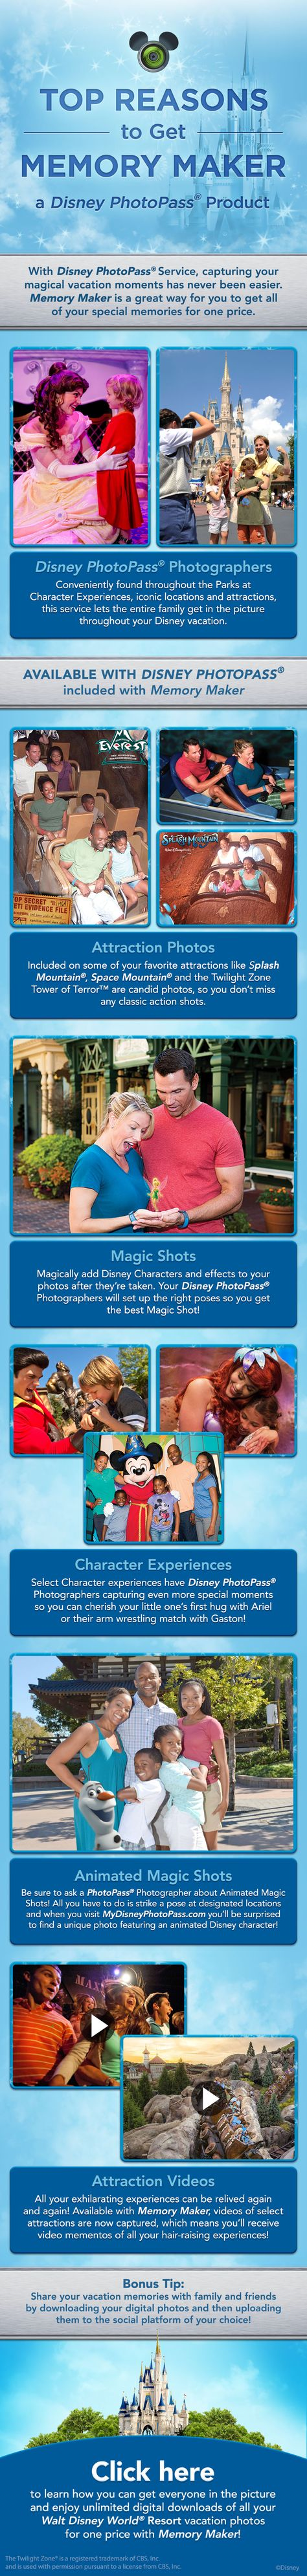 Learn how Memory Maker from Disney PhotoPass can capture all of your special moments from your Walt Disney World vacation! Ready to start making your own Magical Memories? Contact me today for your free, no obligation quote! donnakay@thewdwguru.com or 877-825-6146 ext 706